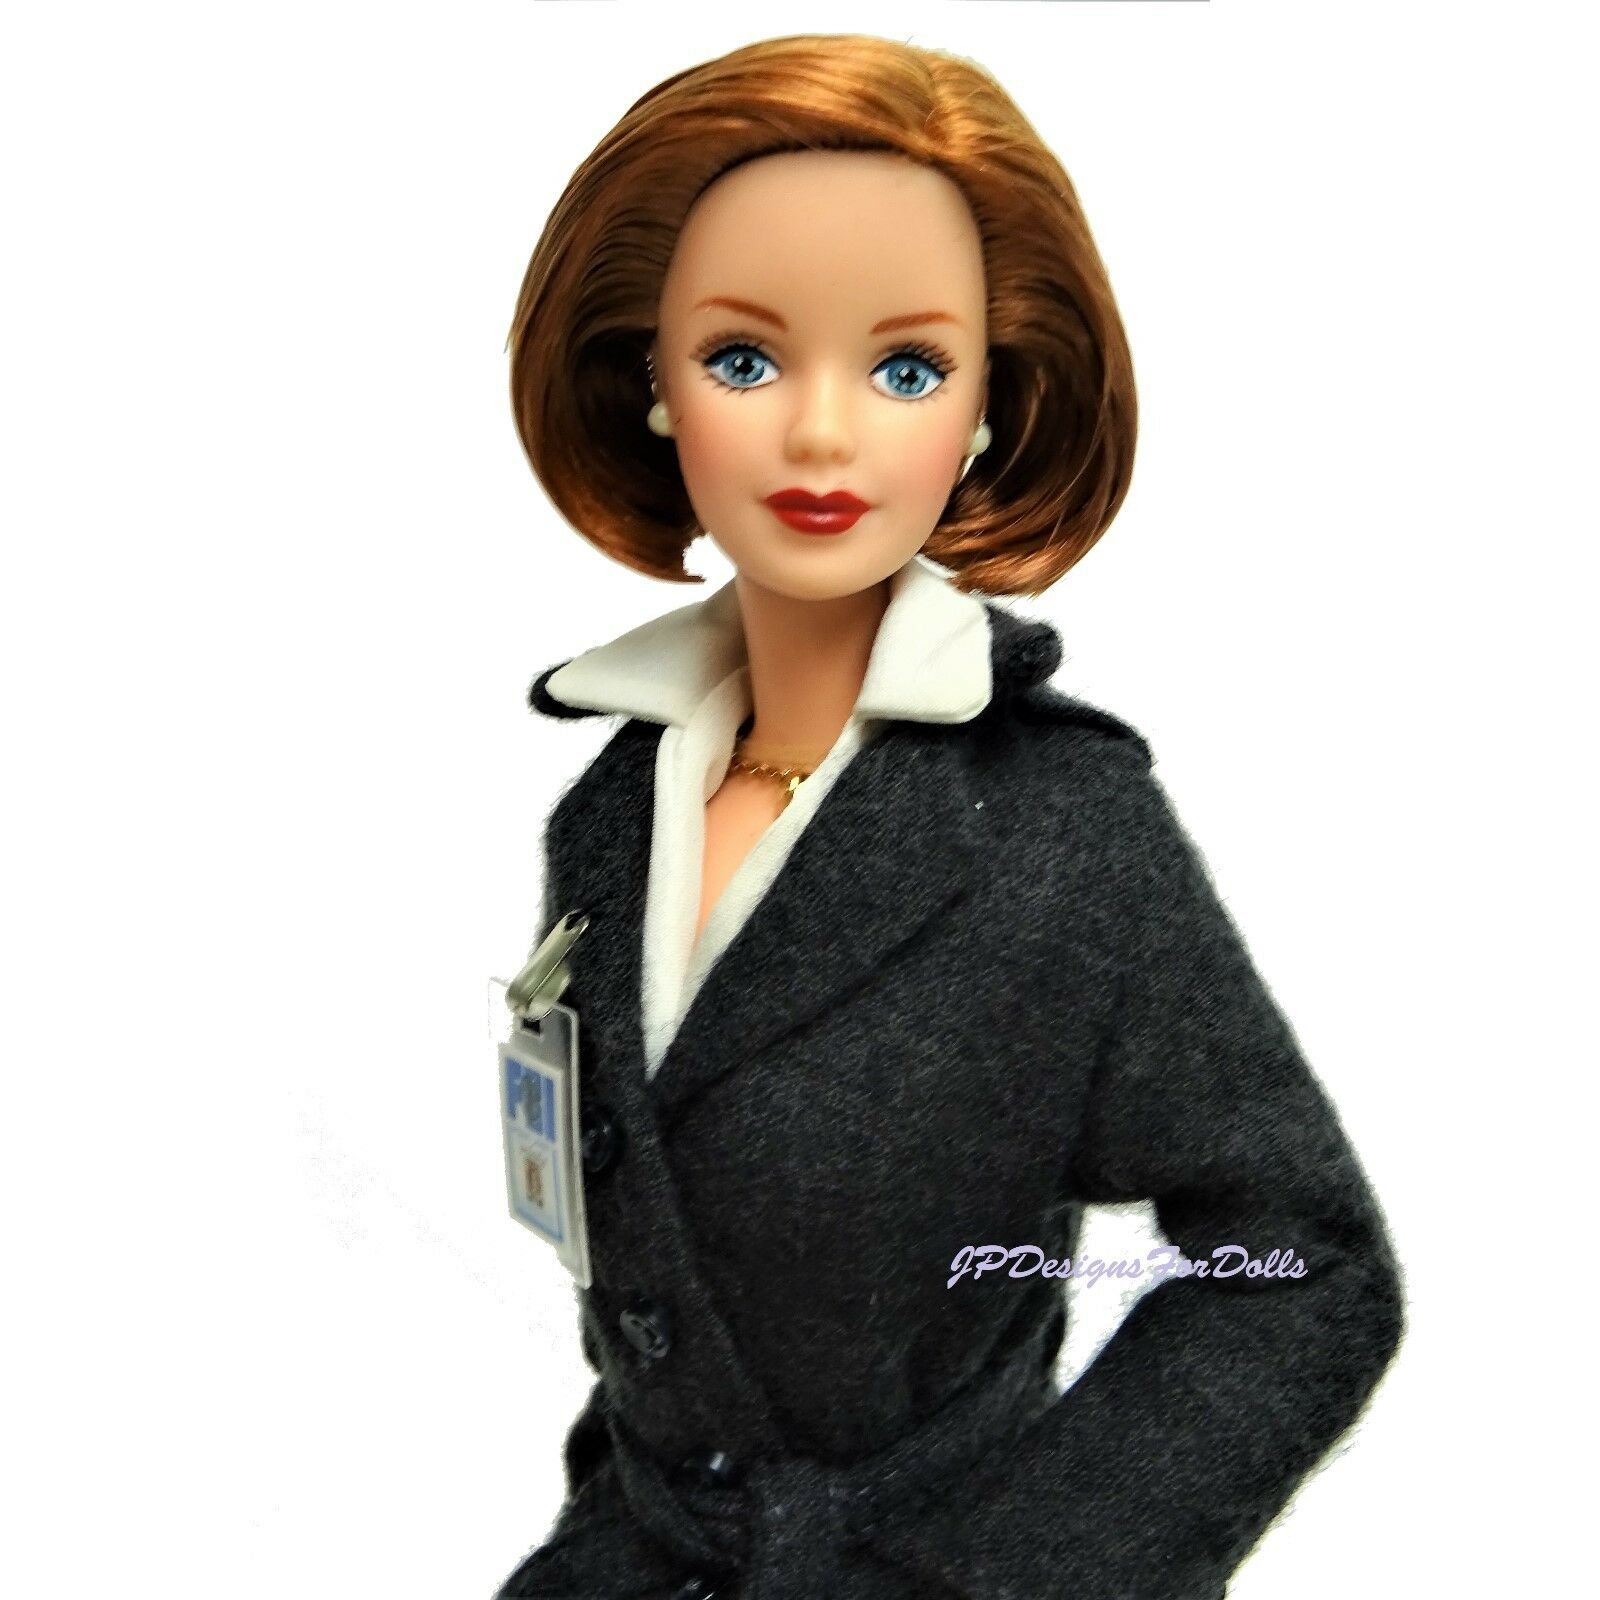 1999 Collectors Barbie as Agent Dana Scully Doll Mint out of Box with Stand